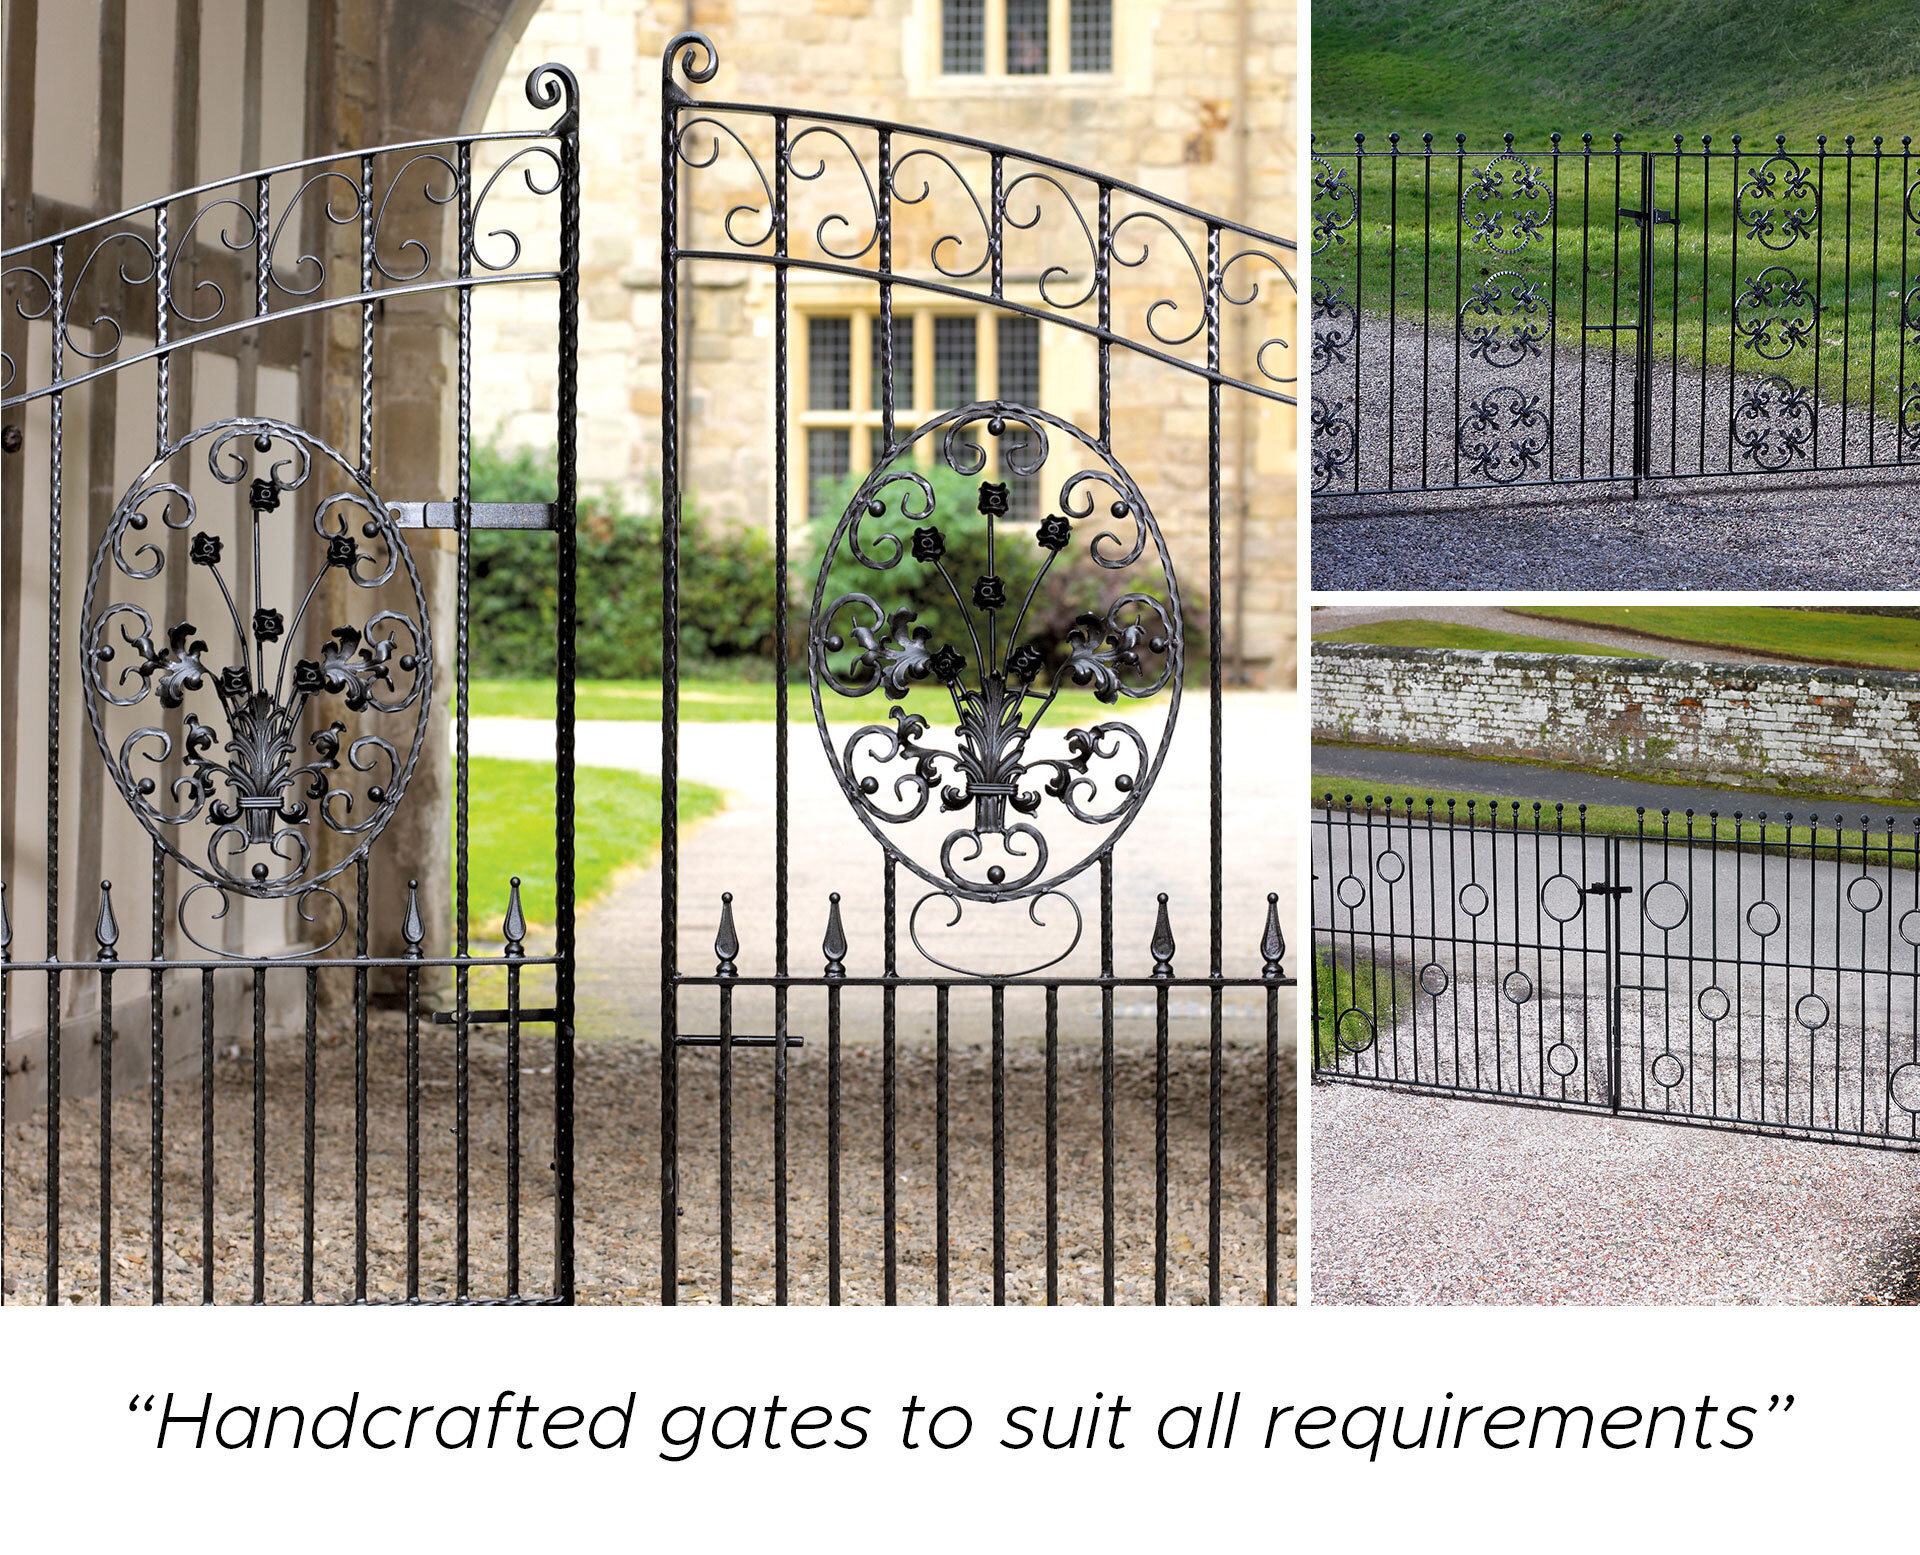 Handcrafted metal gates for Cheshire gardens and driveways